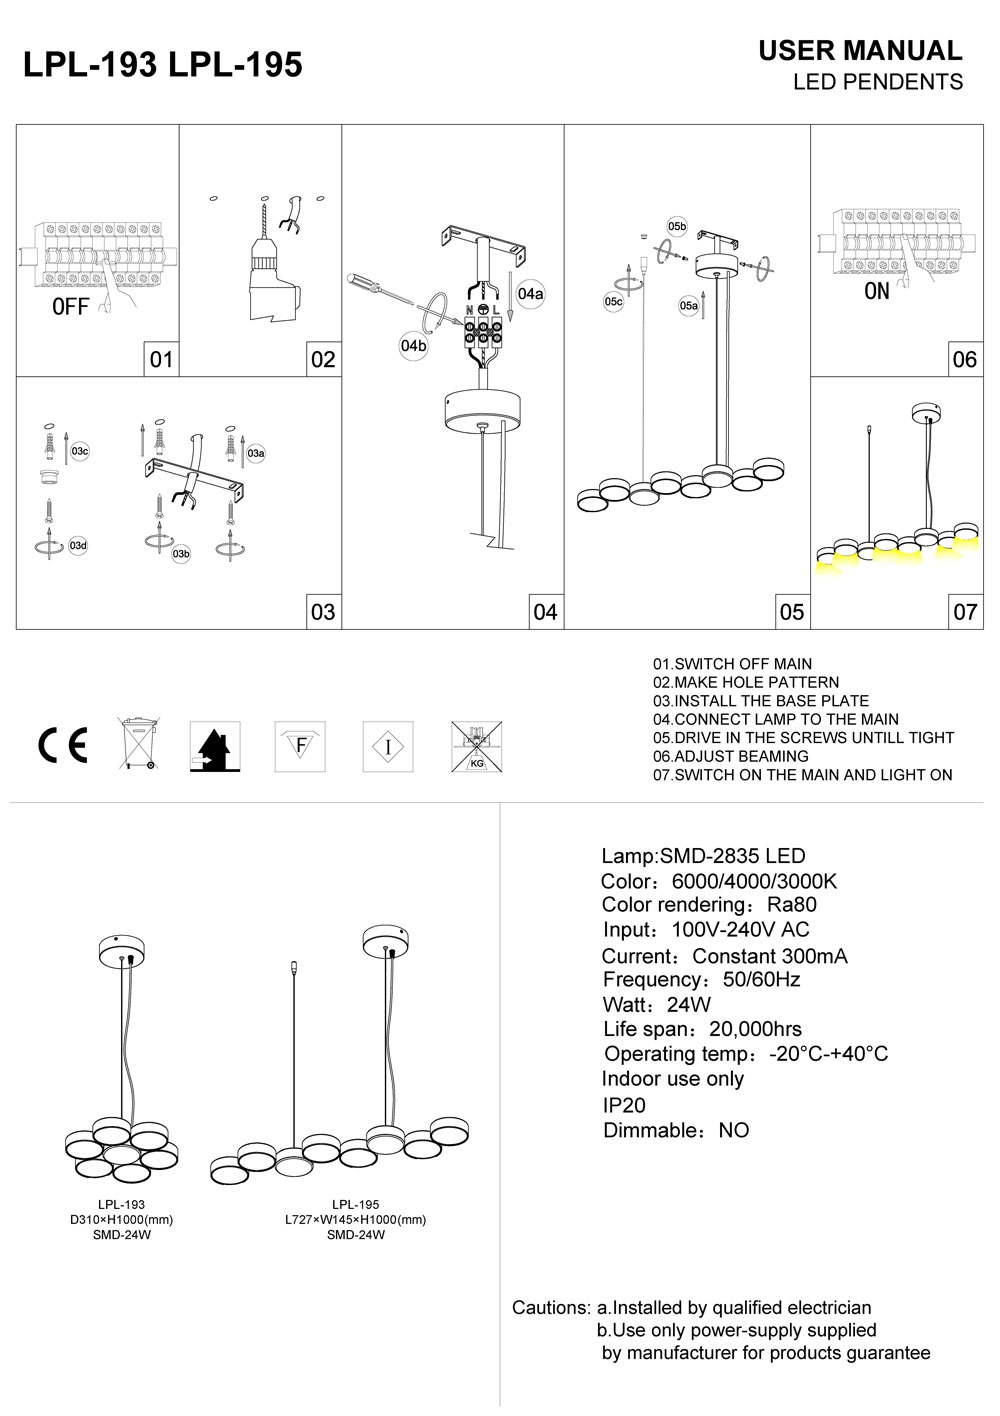 LPL-193-LPL-195 modern LED pendant light installation guide